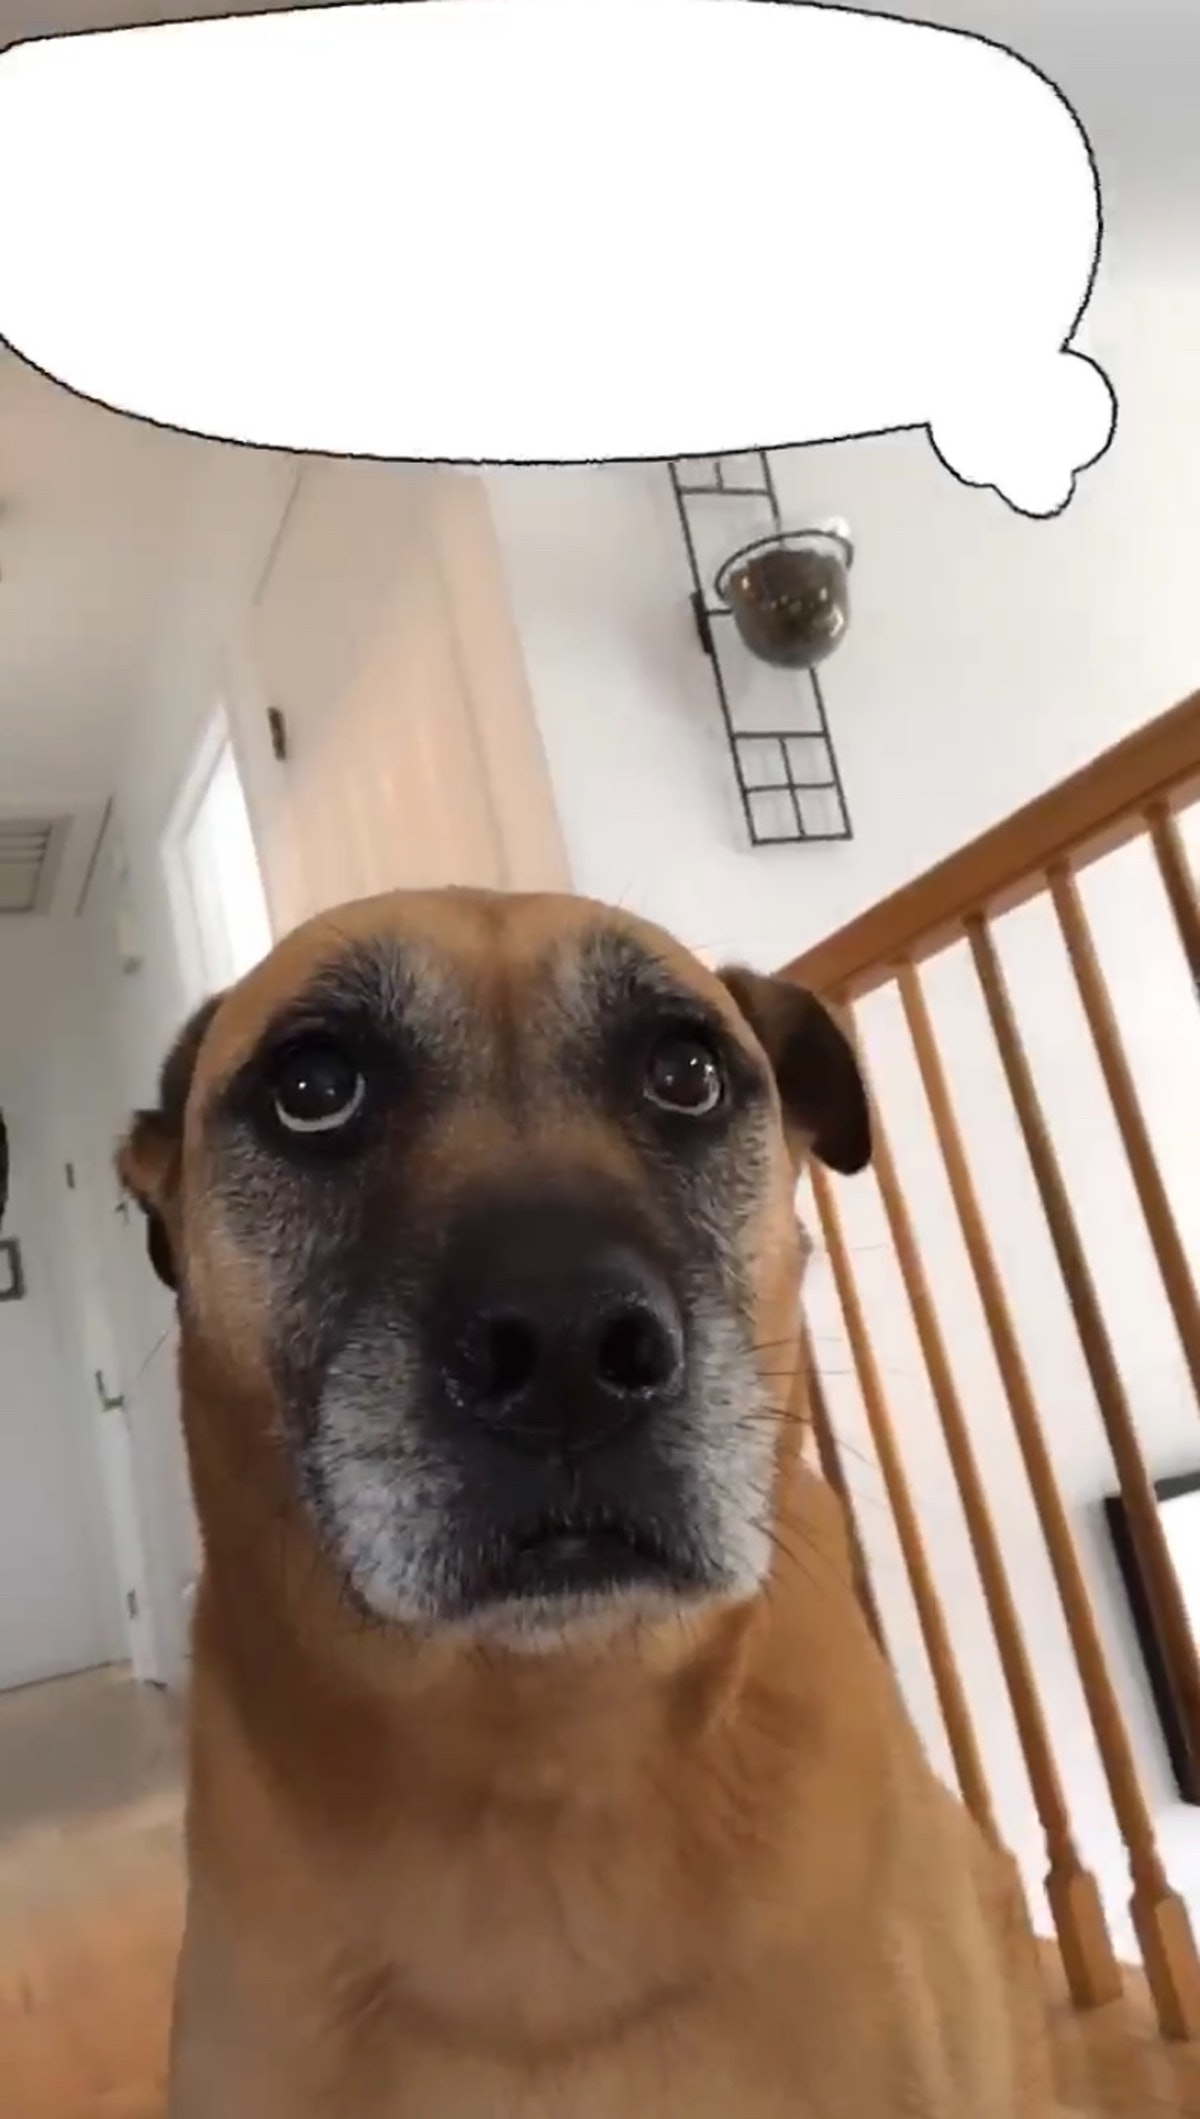 A dog looks up at a thought bubble over its head.